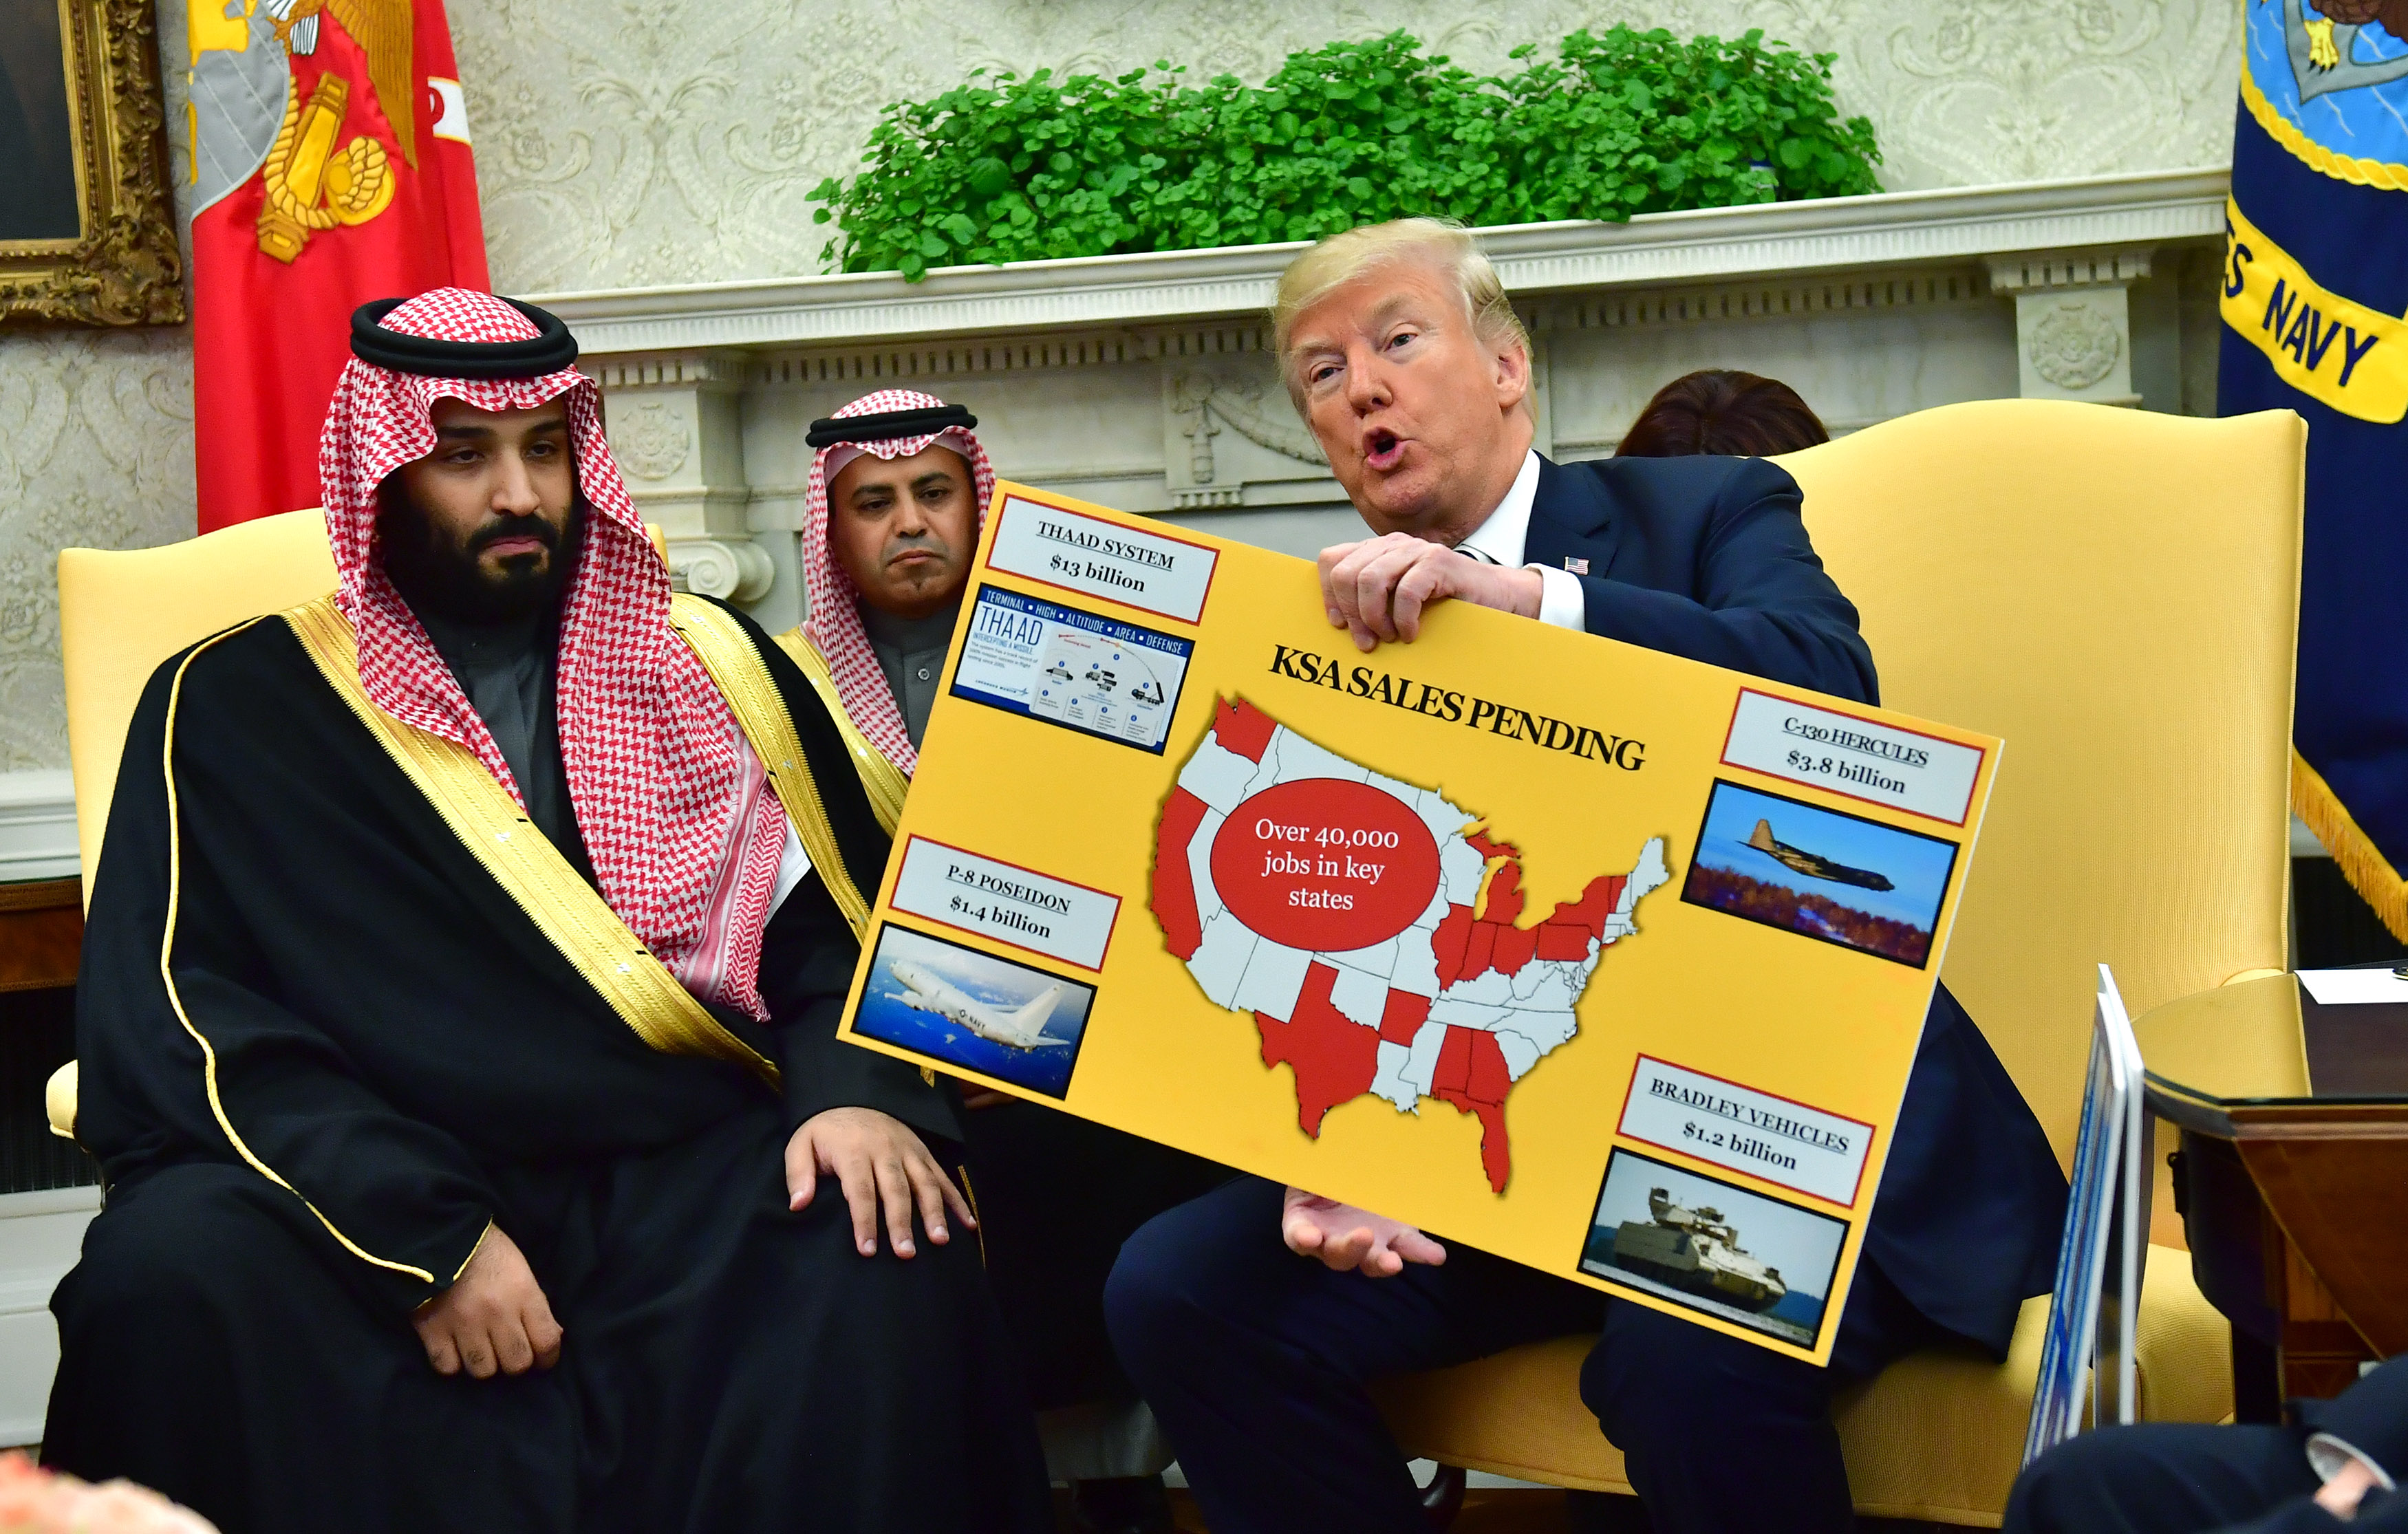 Trump's Saudi Arabia decision is the perfect distillation of his worldview